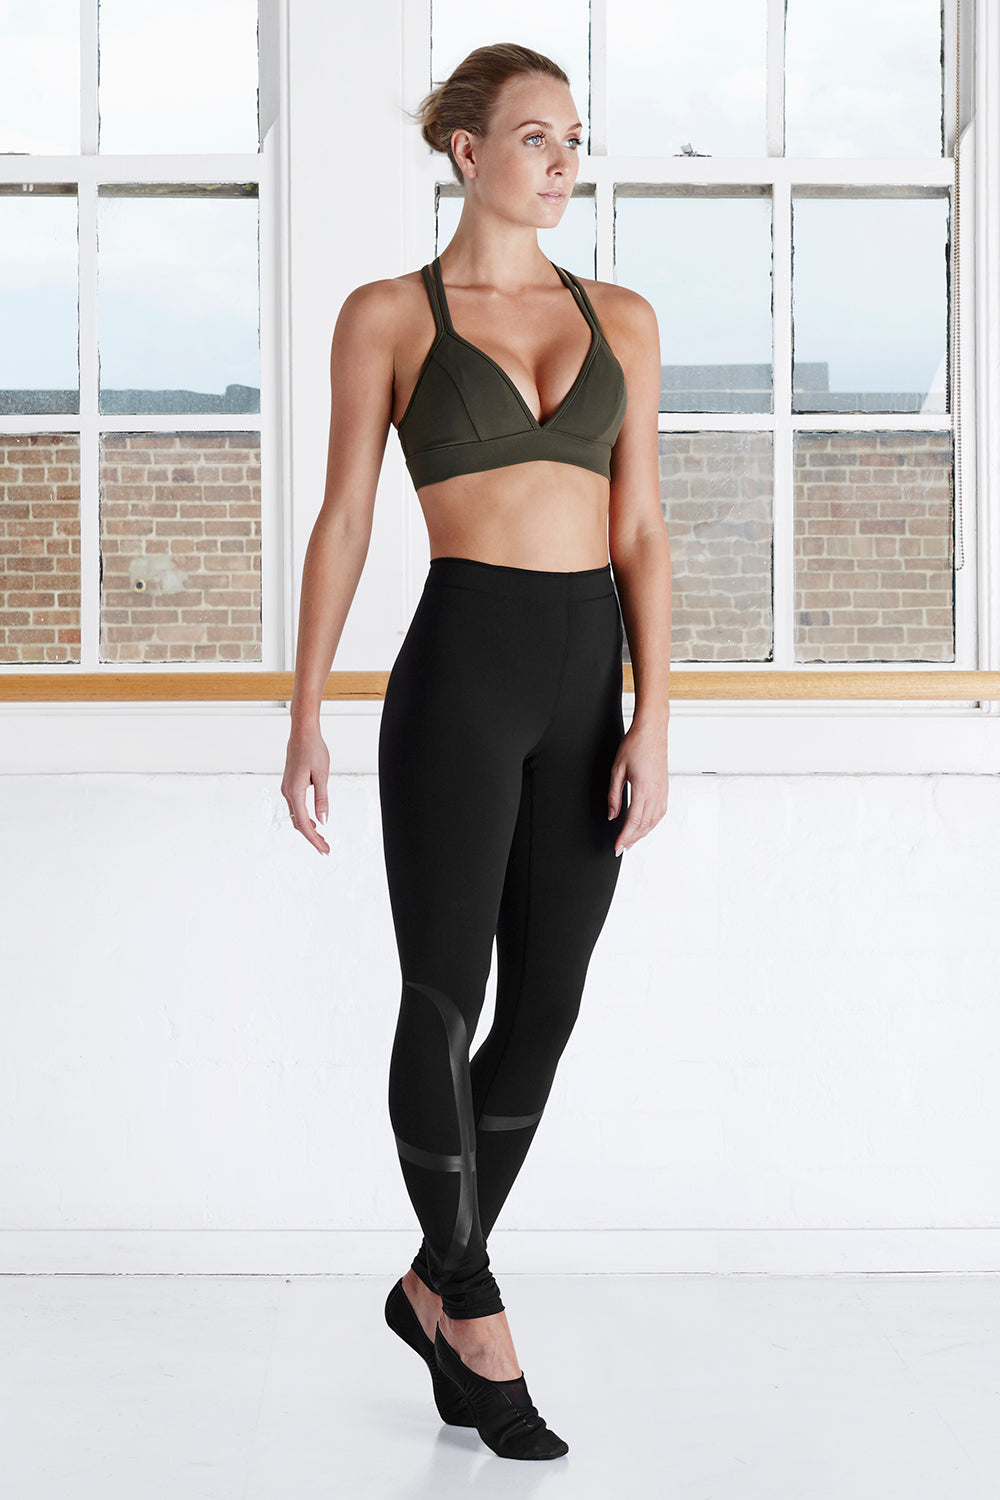 A female dancer in the studio wearing BLOCH active bra top with BLOCH branded stirrup legging